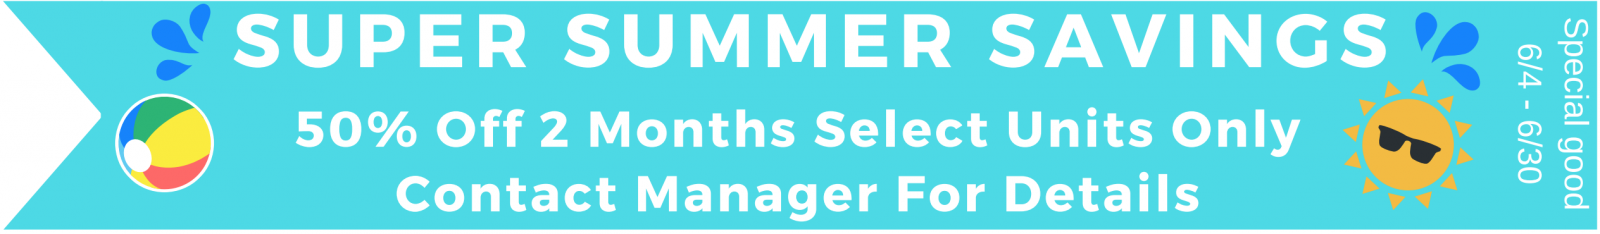 50% off 2 months on select units only - contact manager for details